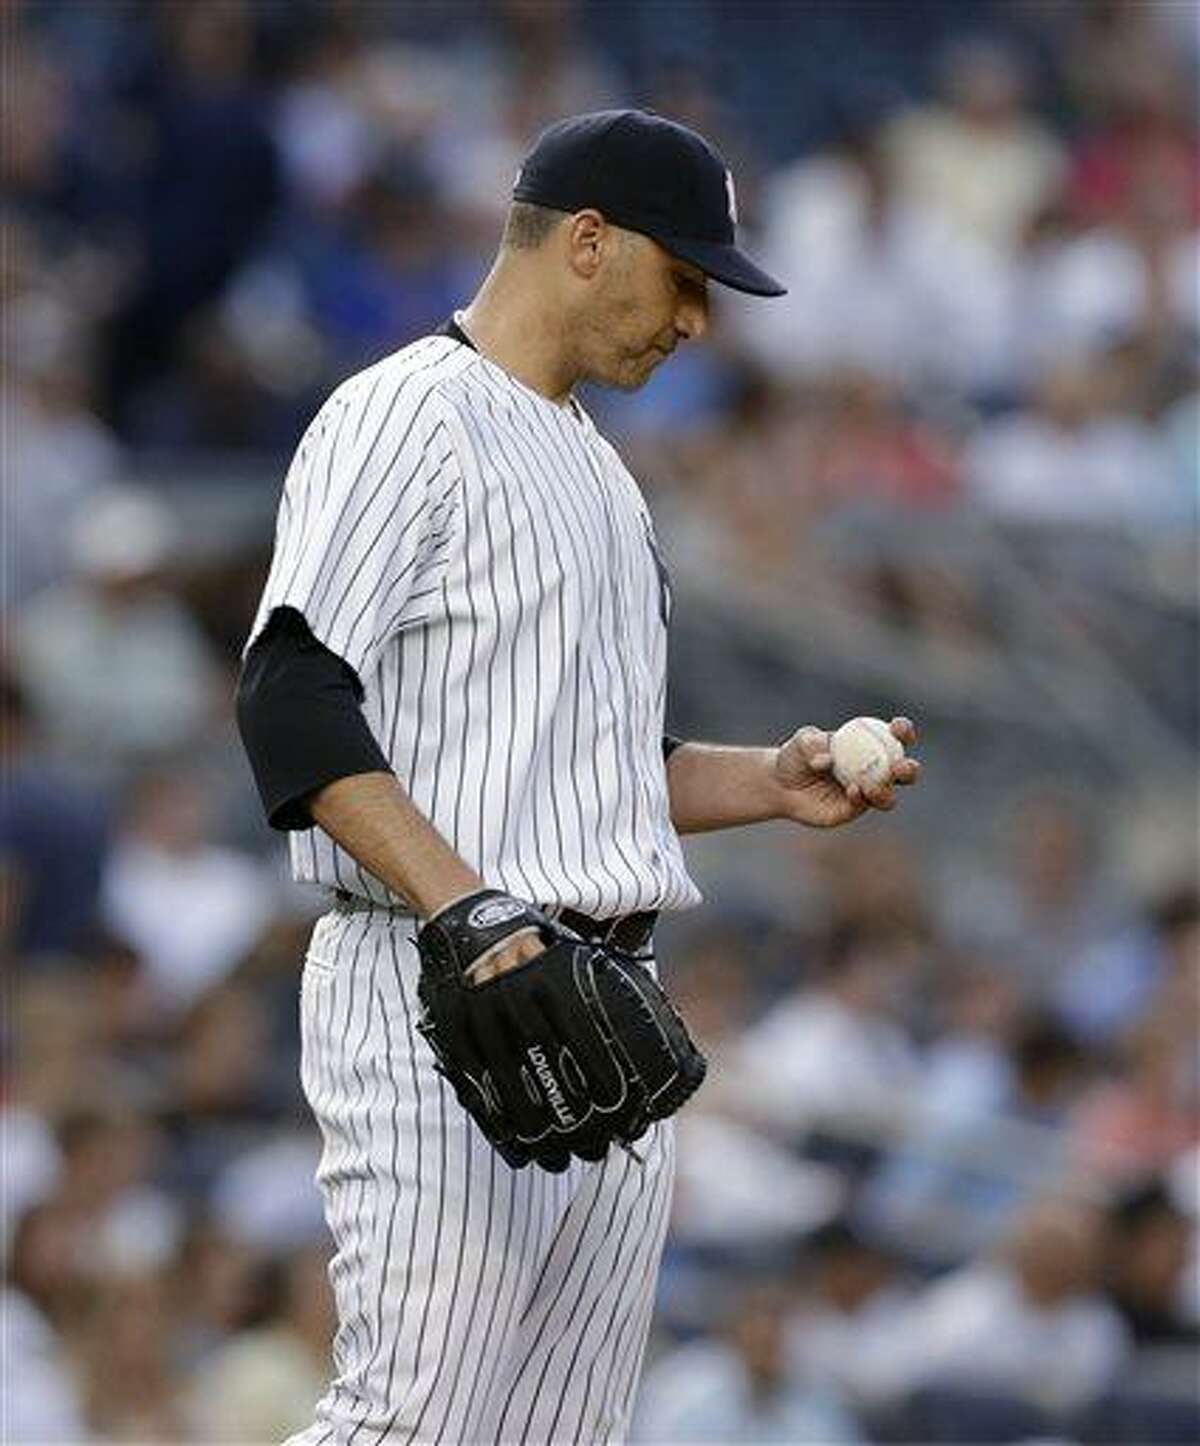 New York Yankees starting pitcher Andy Pettitte looks at the ball after allowing four runs to the Texas Rangers in the third inning of a baseball game, Wednesday, June 26, 2013, in New York. (AP Photo/Kathy Willens)